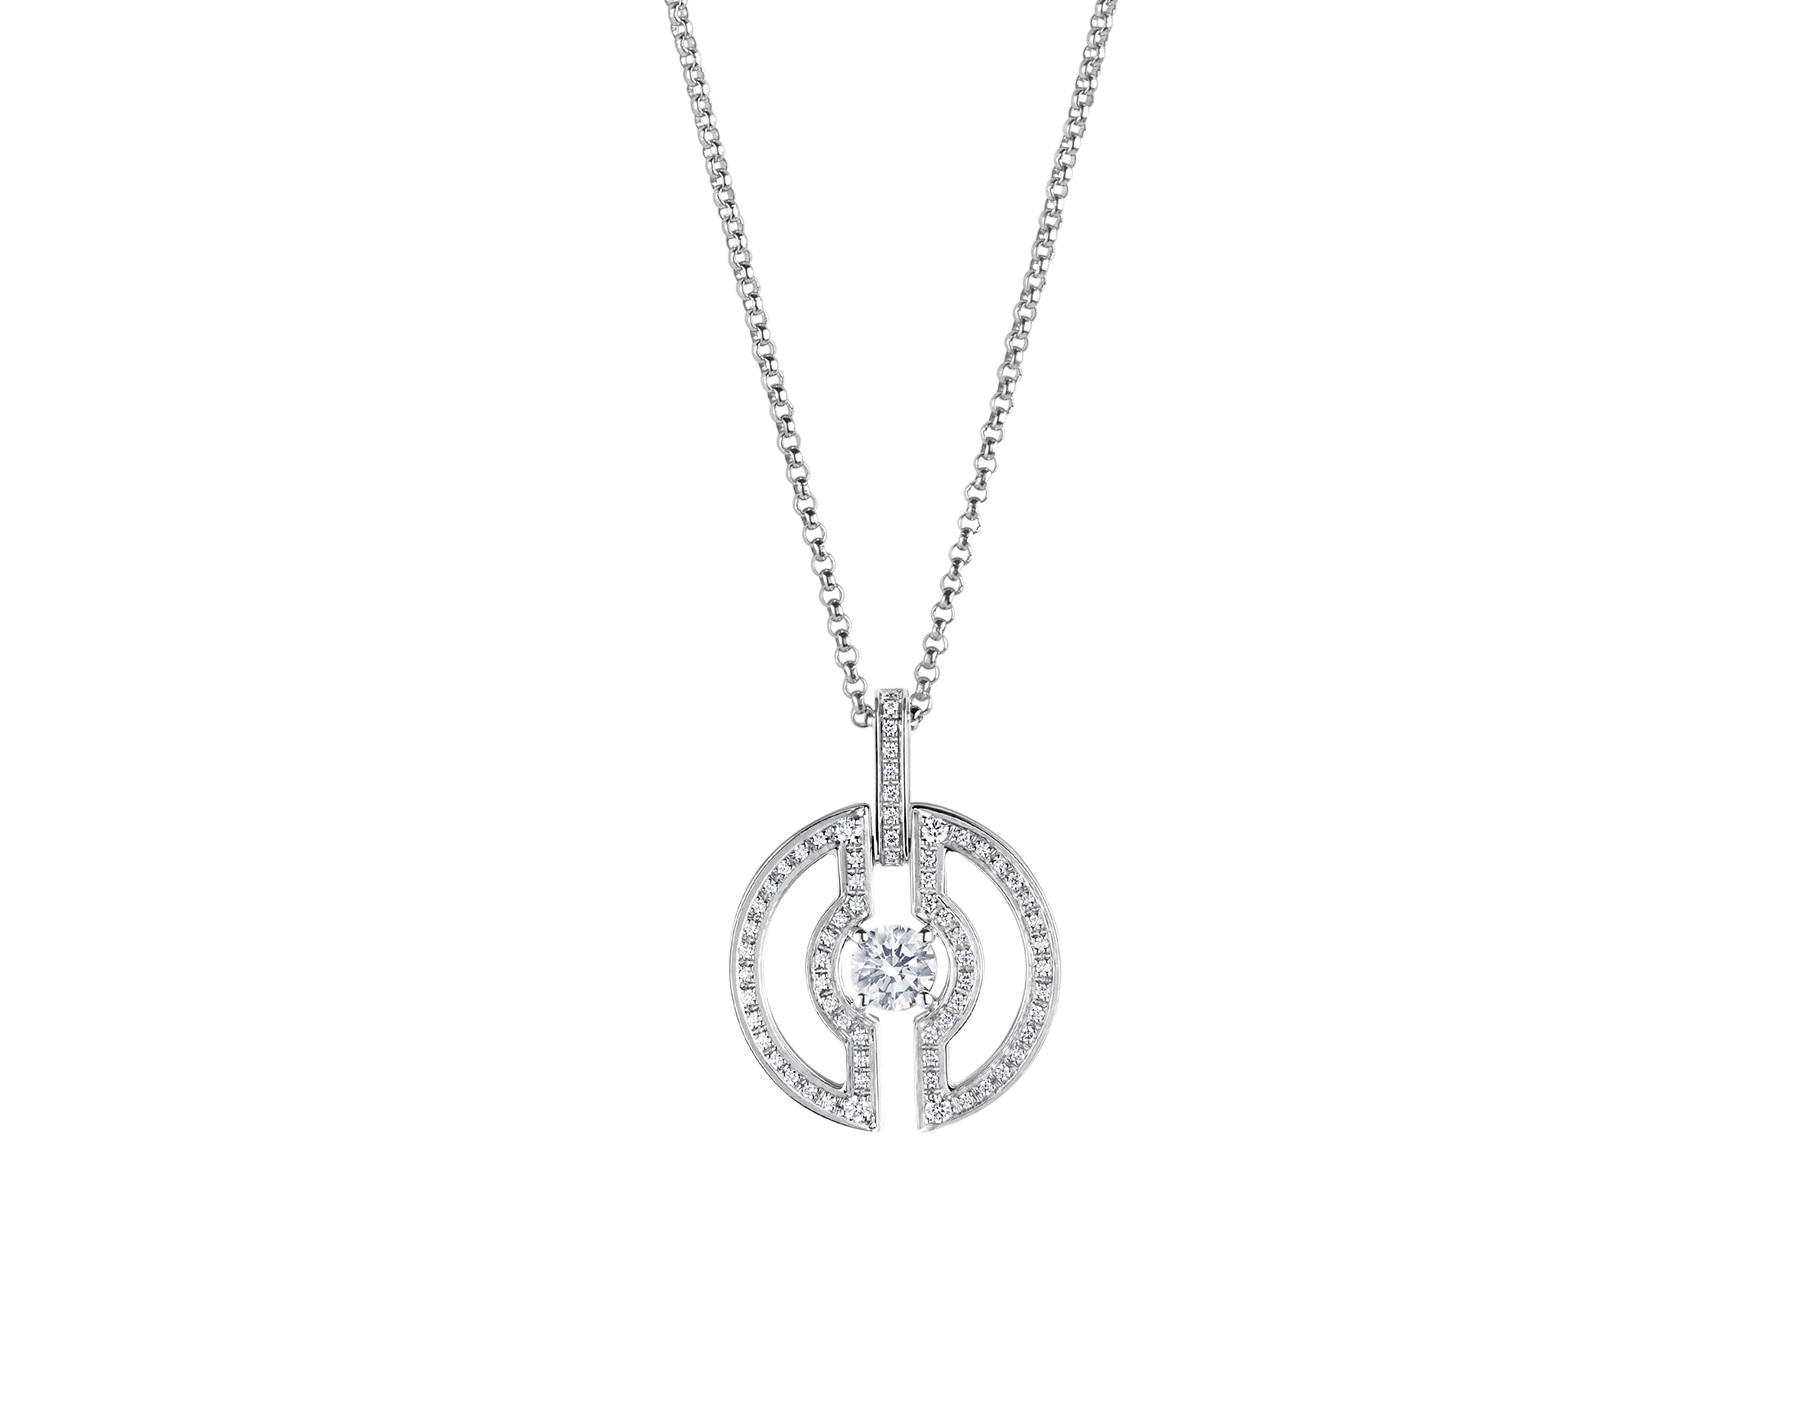 Parentesi necklace with 18 kt white gold chain and pendant, set with a central diamond and pavé diamonds on the edges. 354313 image 2